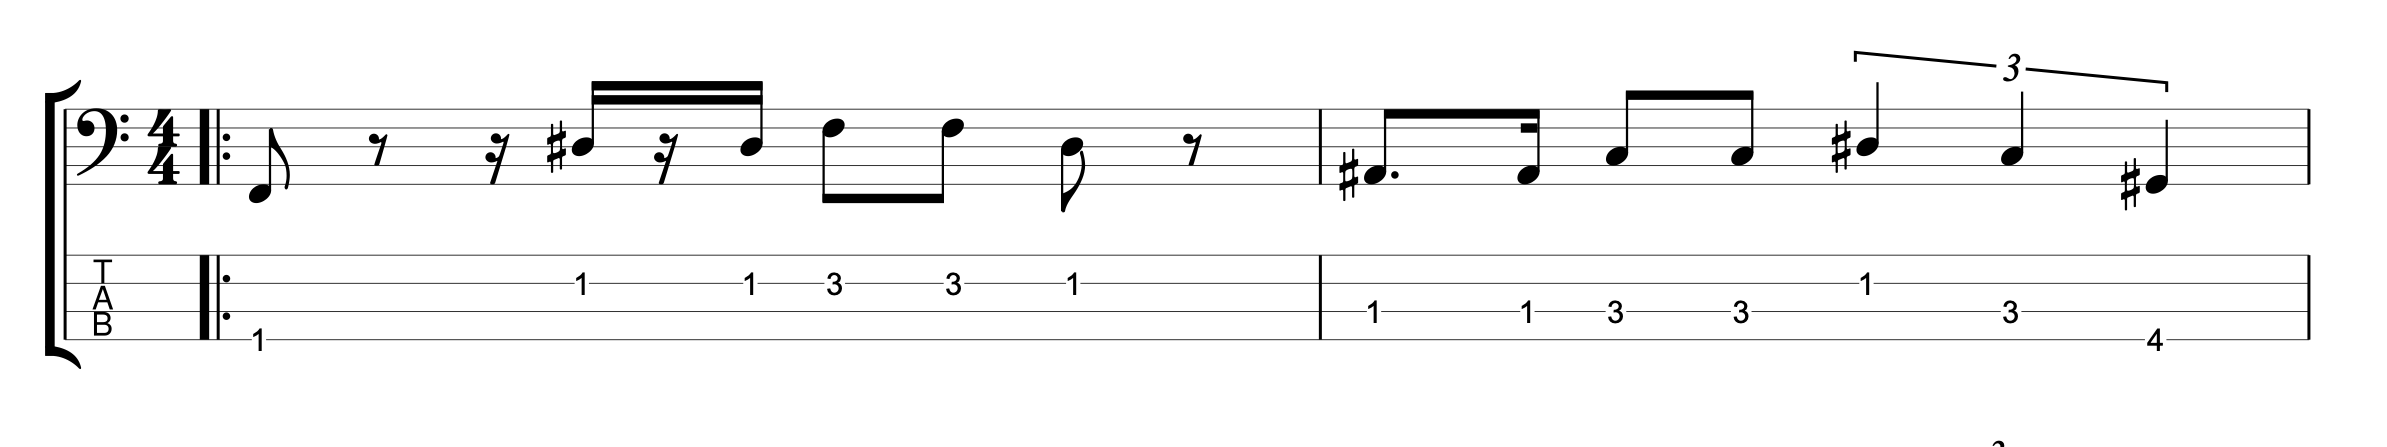 Straight 16th Bass Groove with 16th note Triplets